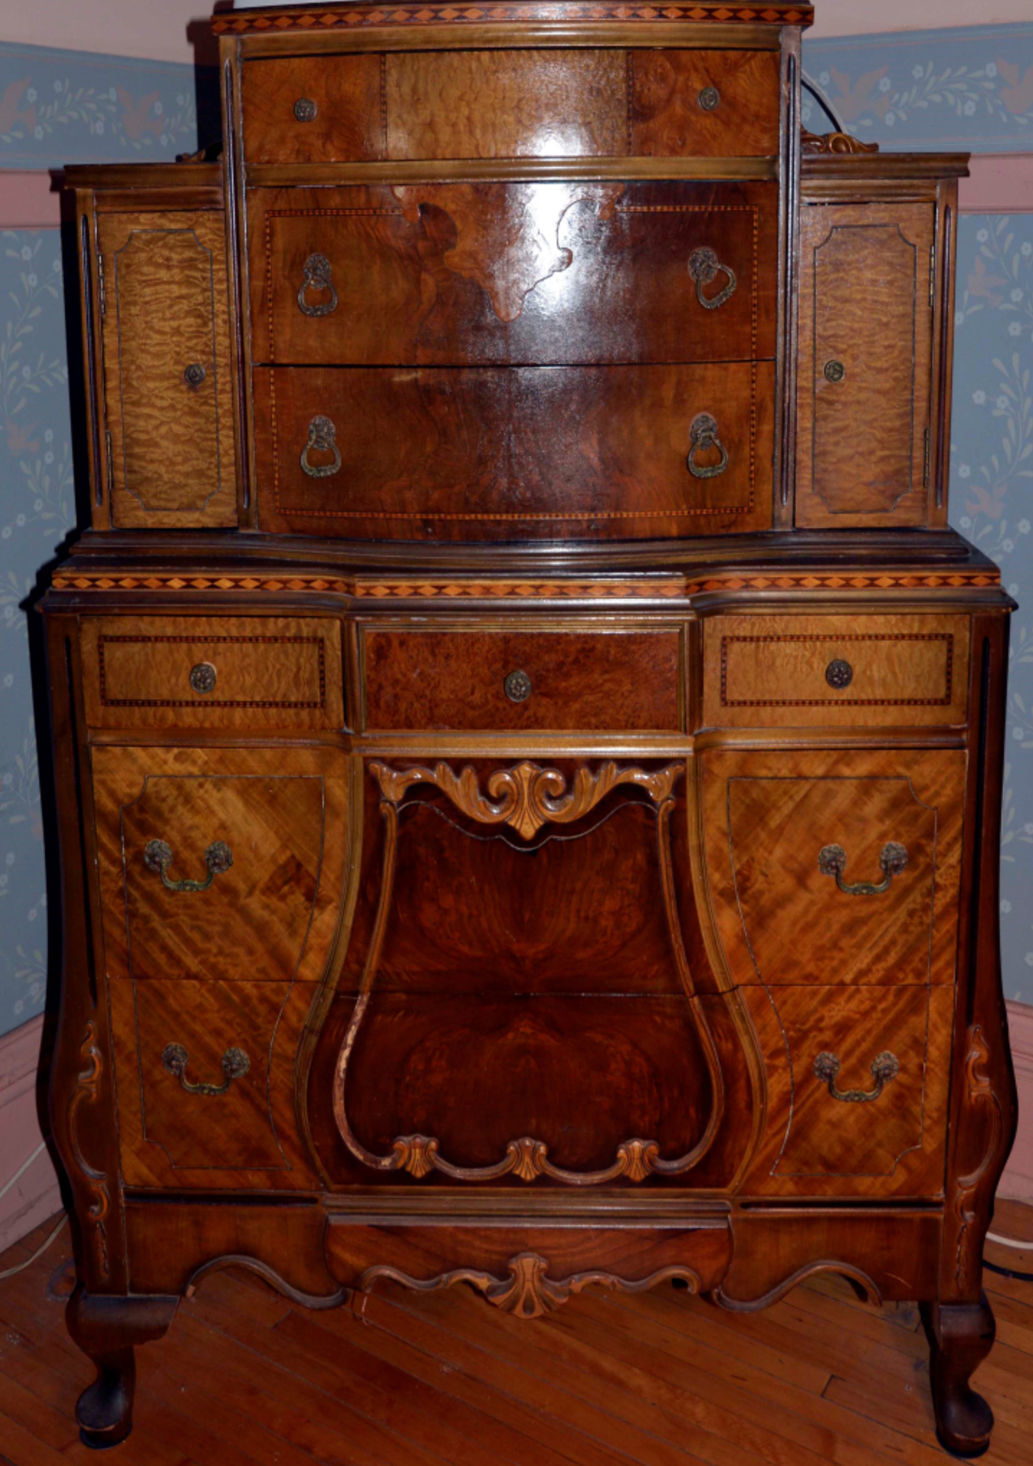 Treasures in Your Attic: Set is nice example of 1920s French-influenced furniture